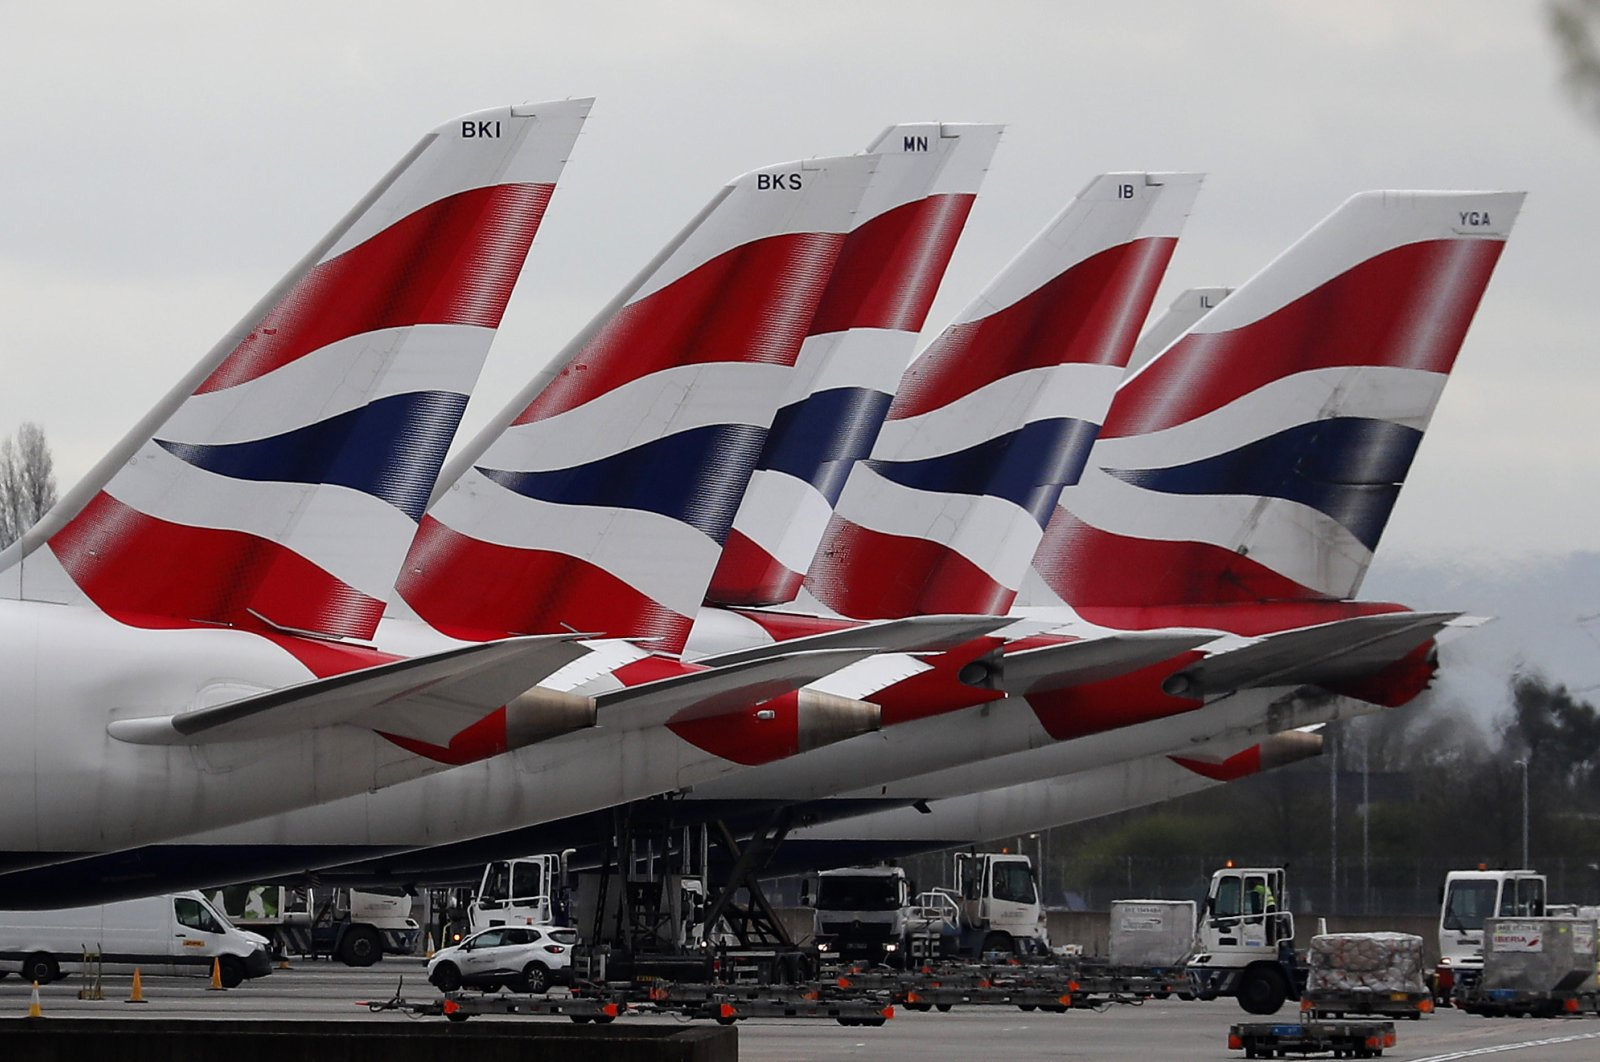 British Airways planes are seen parked at Terminal 5 at Heathrow Airport in London, Britain, March 18, 2020. (AP Photo)